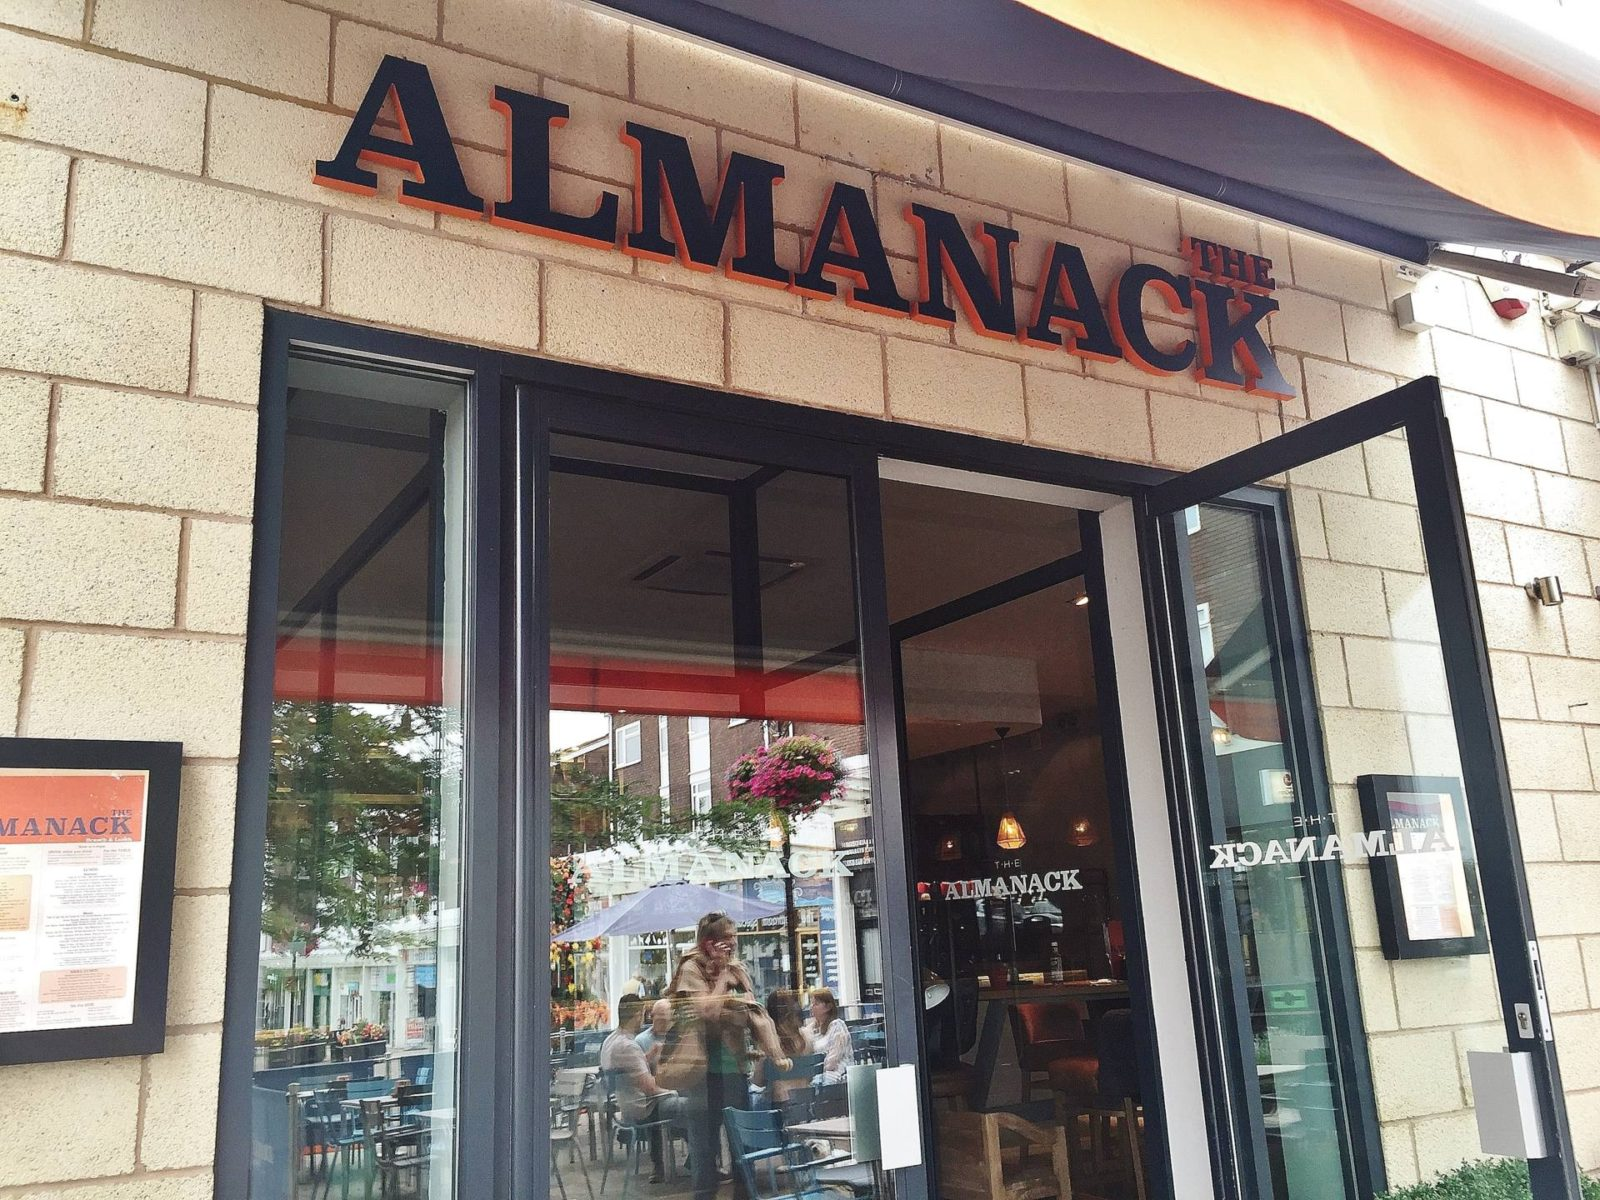 The Almanack Kenilworth